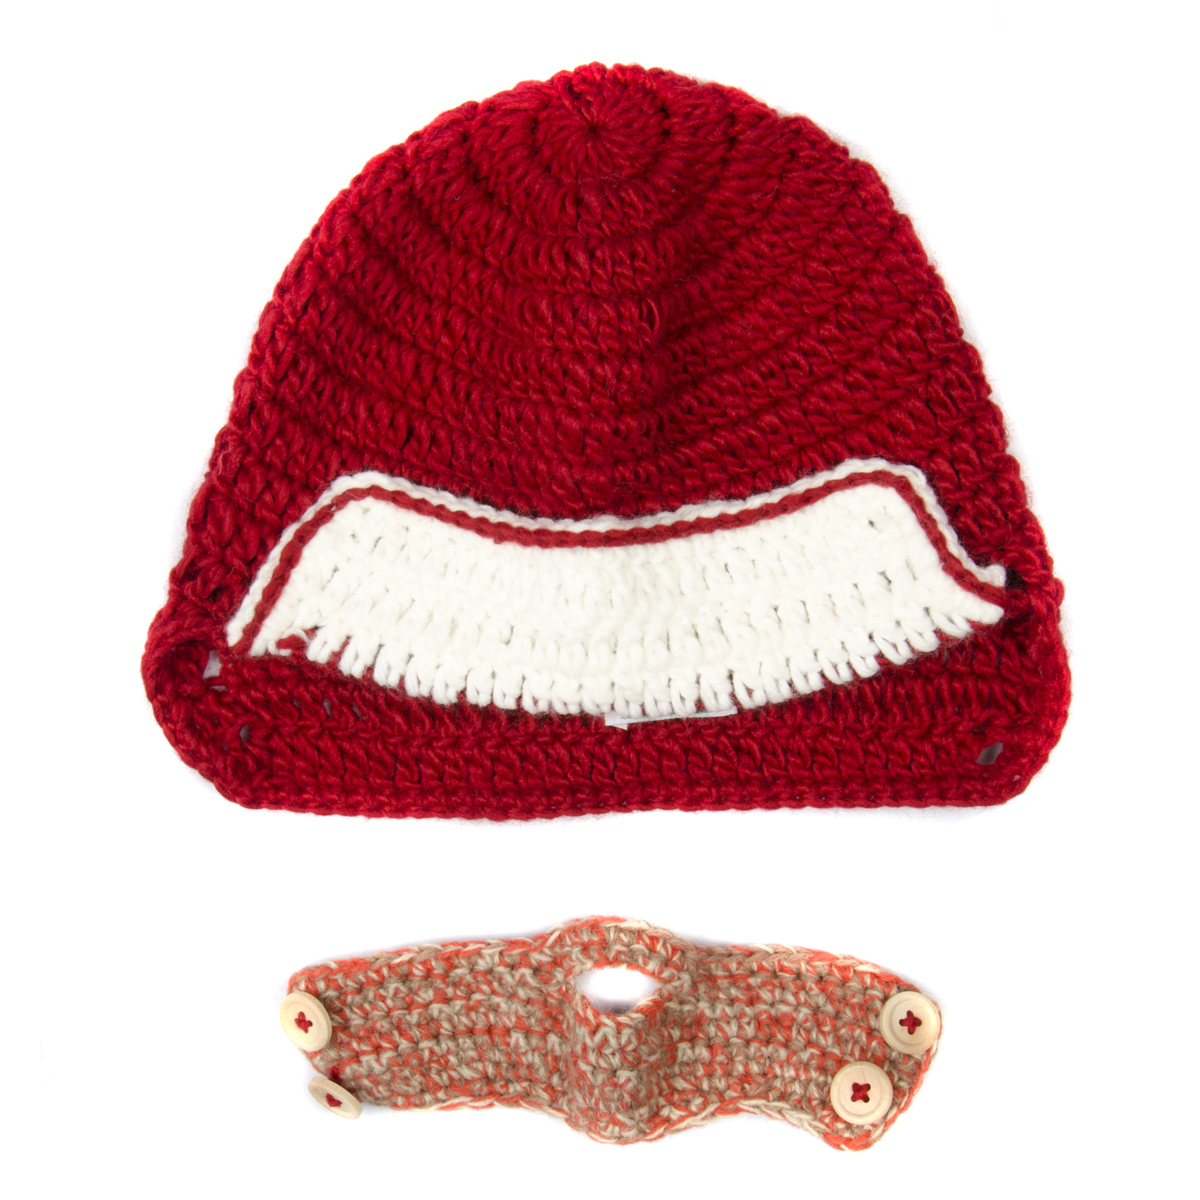 ccf1ea69b1f Red and White Beanie with Beard - Boy Girl Toddler Kid (Large)